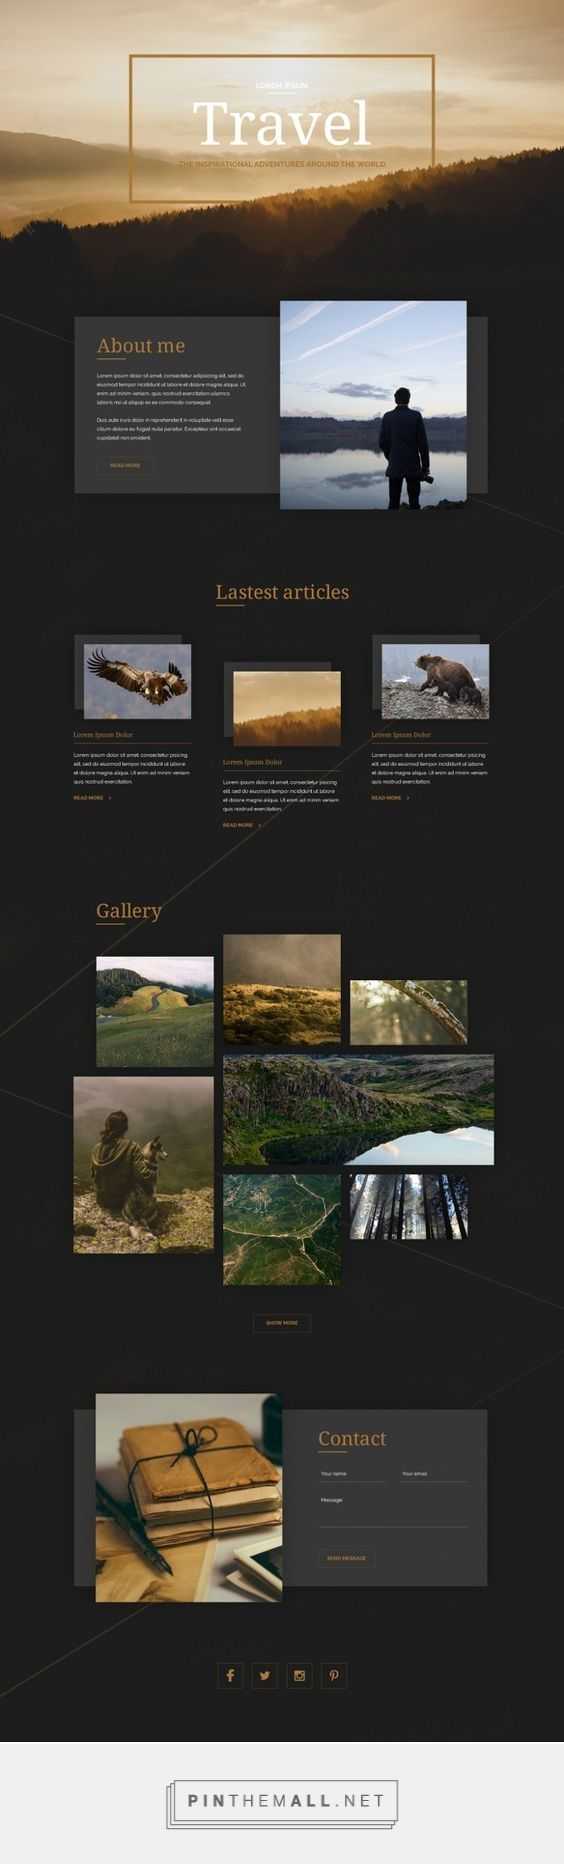 Travel Web Design | Fivestar Branding – Design and Branding Agency & Inspiration Gallery